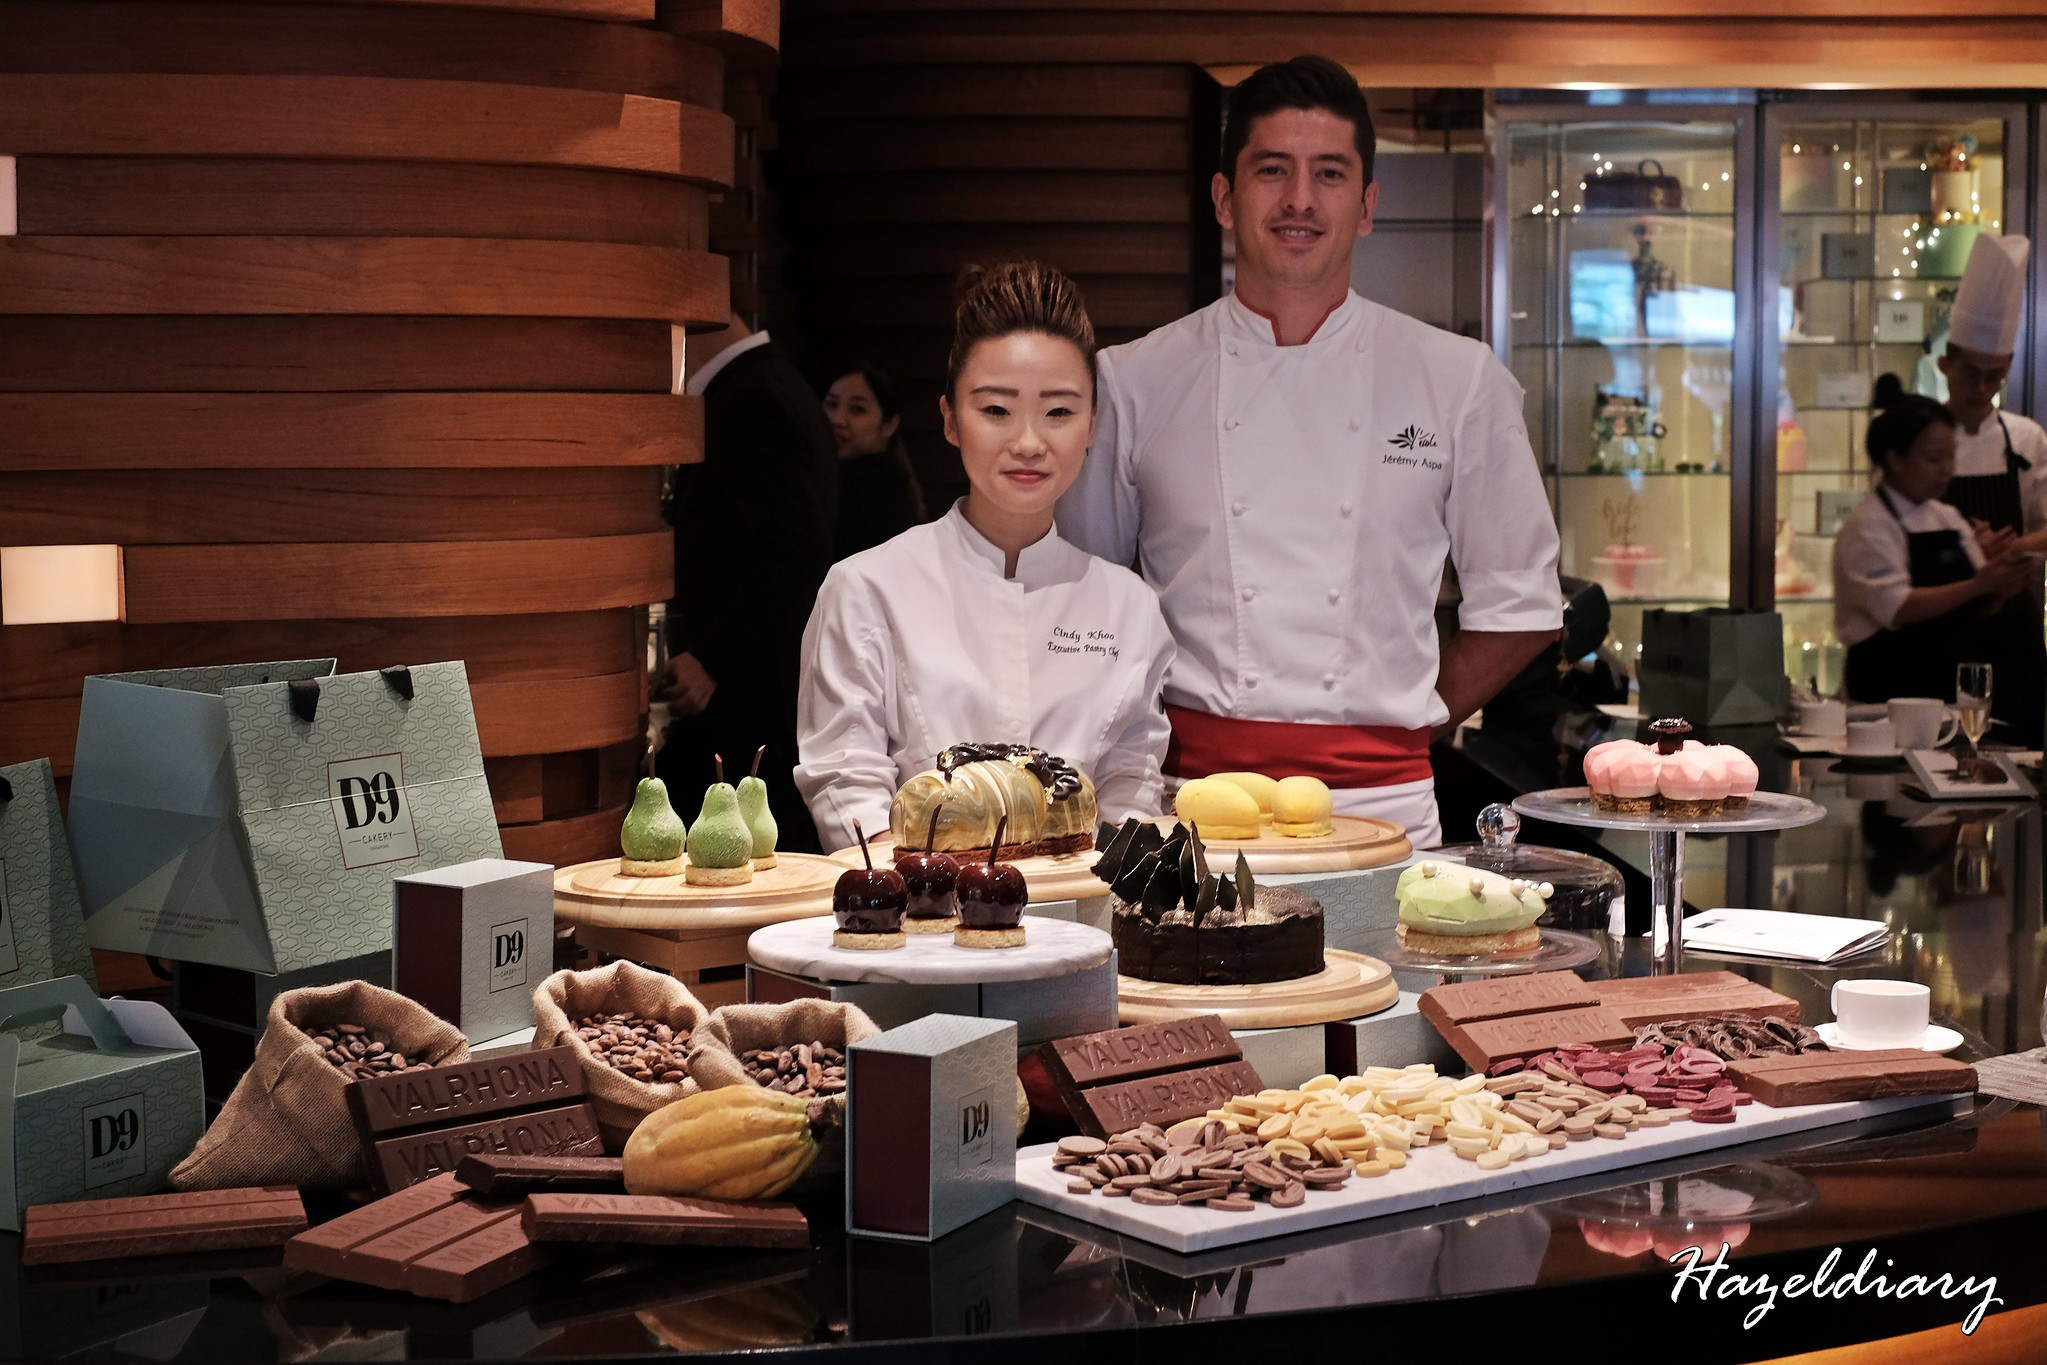 [SG EATS] D9 Cakery of Hilton Singapore X Valrhona New Premium Cocoa Inspired Collection